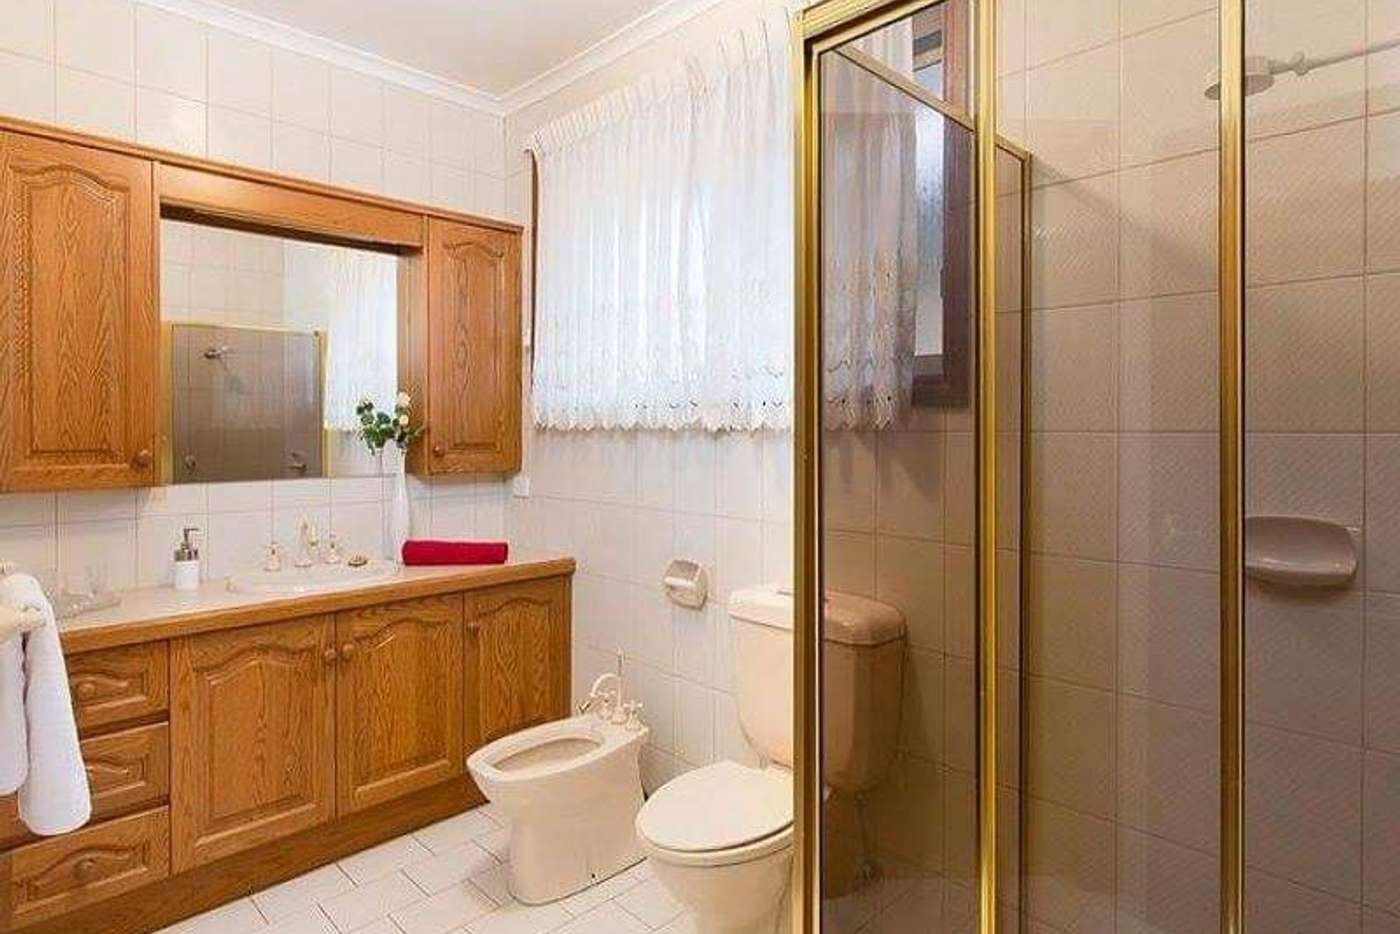 Seventh view of Homely house listing, 78 Carmichael Road, Oakleigh East VIC 3166